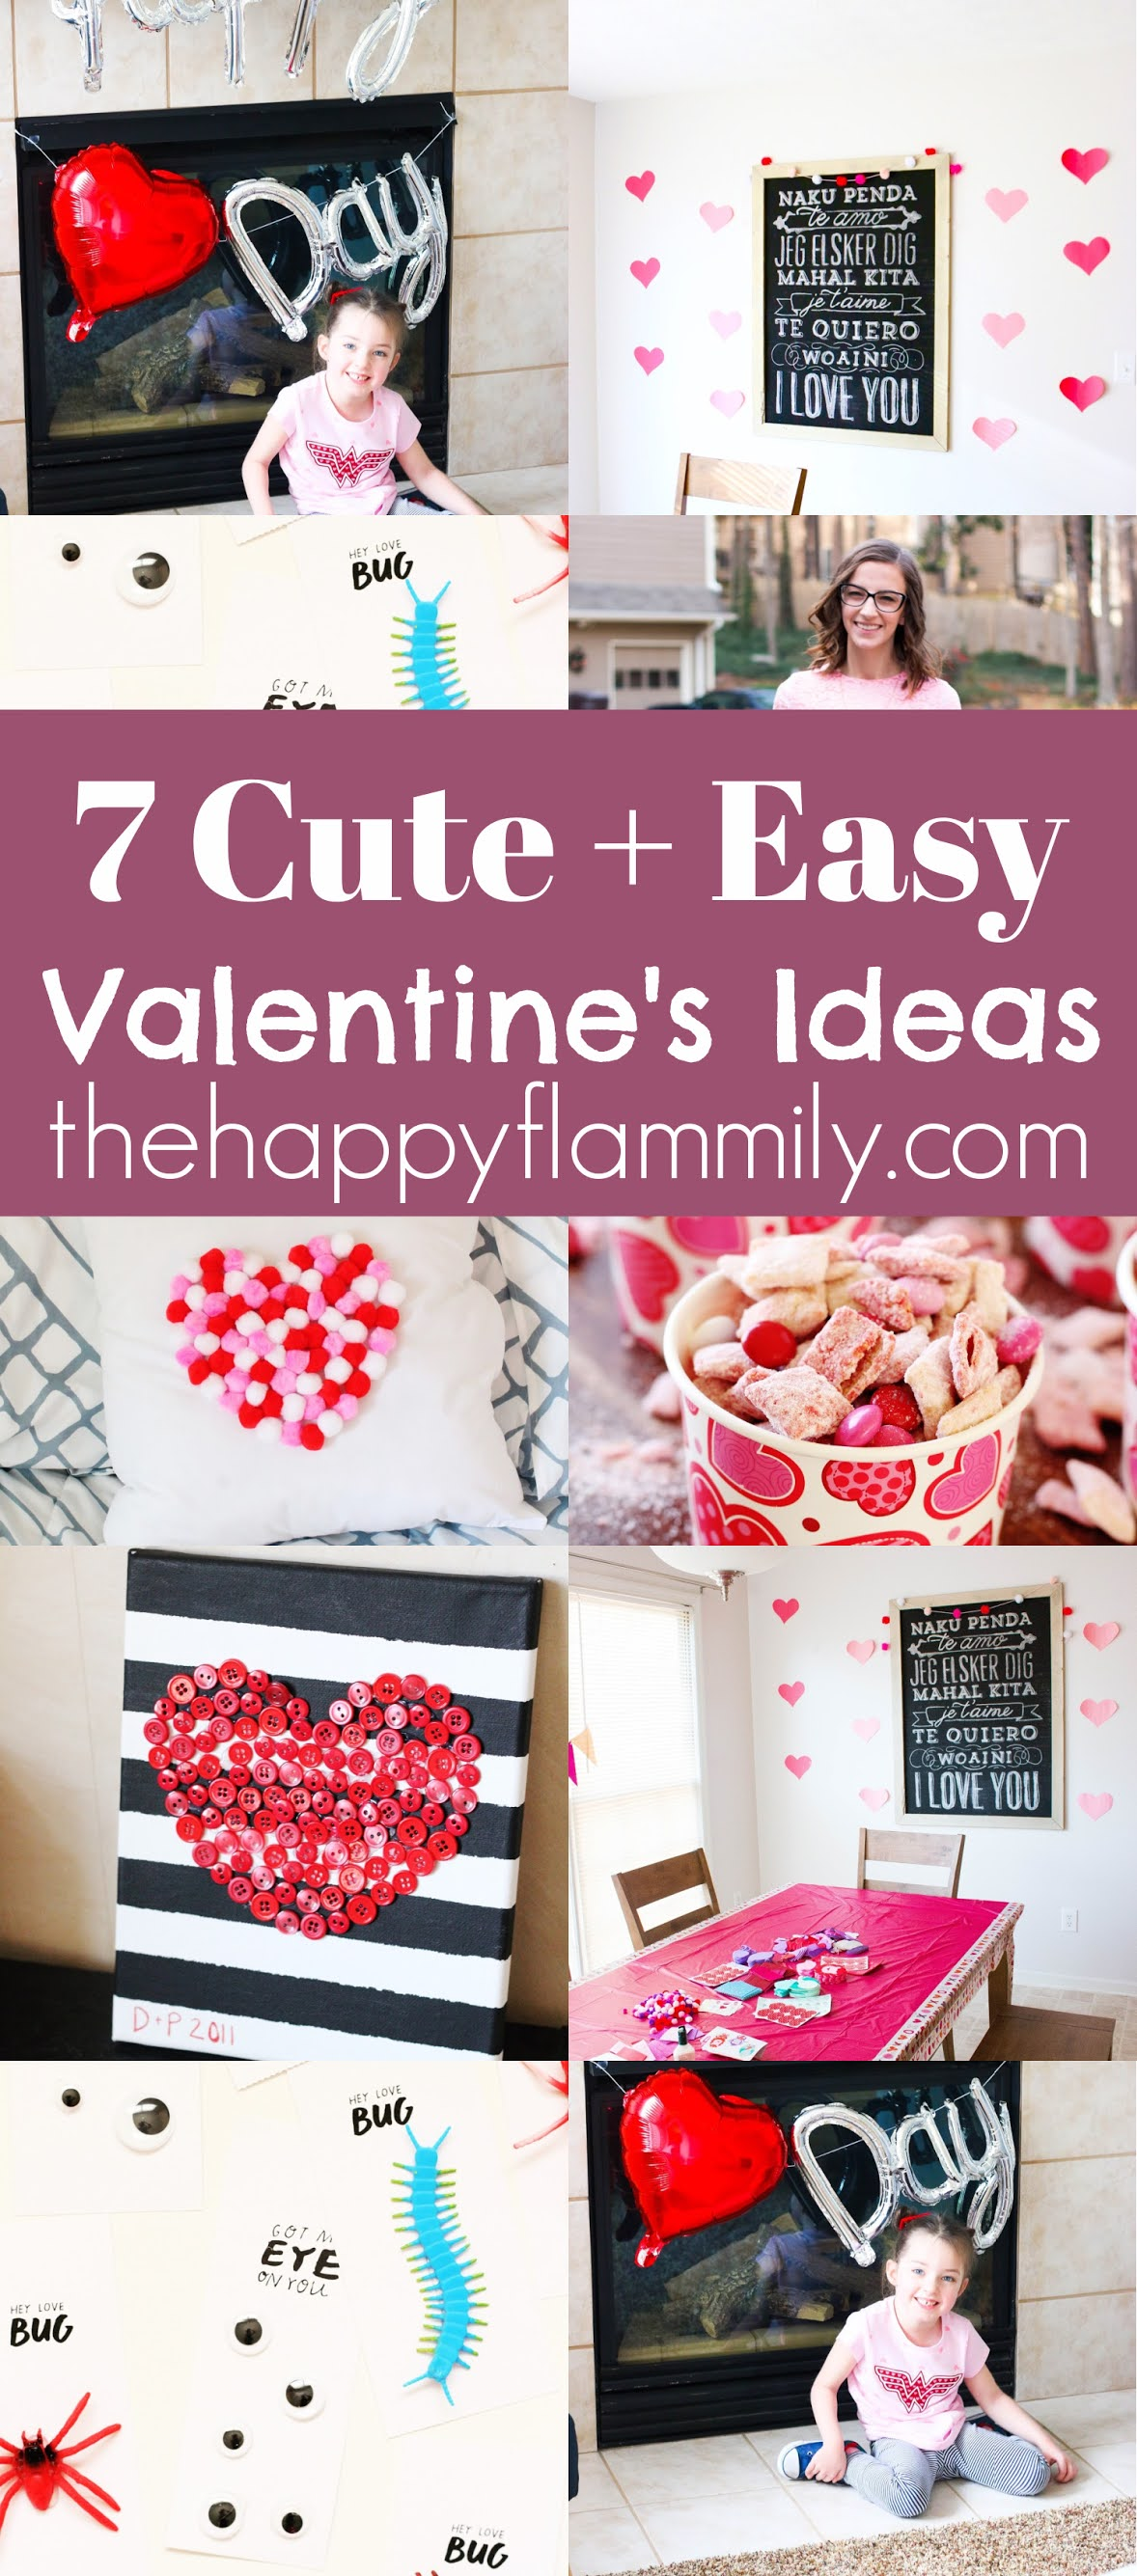 Seven cute Valentine's ideas. Easy Valentine's day ideas. DIY Valentine's card ideas. Valentines ideas for kids. How tot celebrate valentines with kids. Ways to celebrate Valentines day. Valentine's day DIY. Valentine's decor ideas. #February #valentines #party #kids #crafts #familyfun